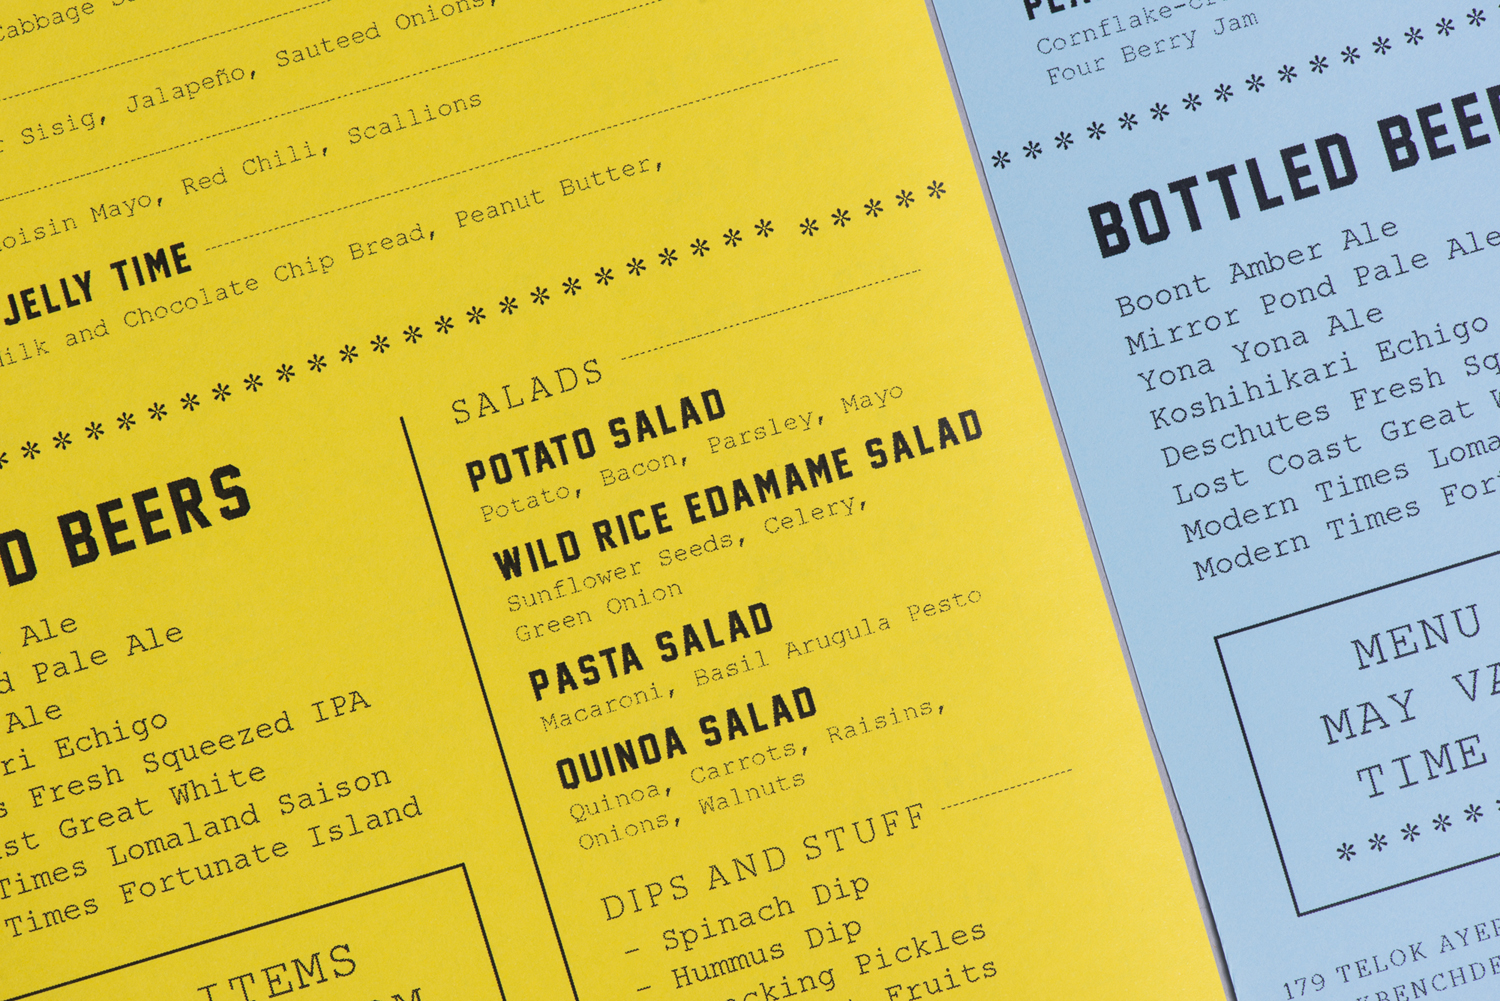 Menu Design – Park Bench Deli by Foreign Policy